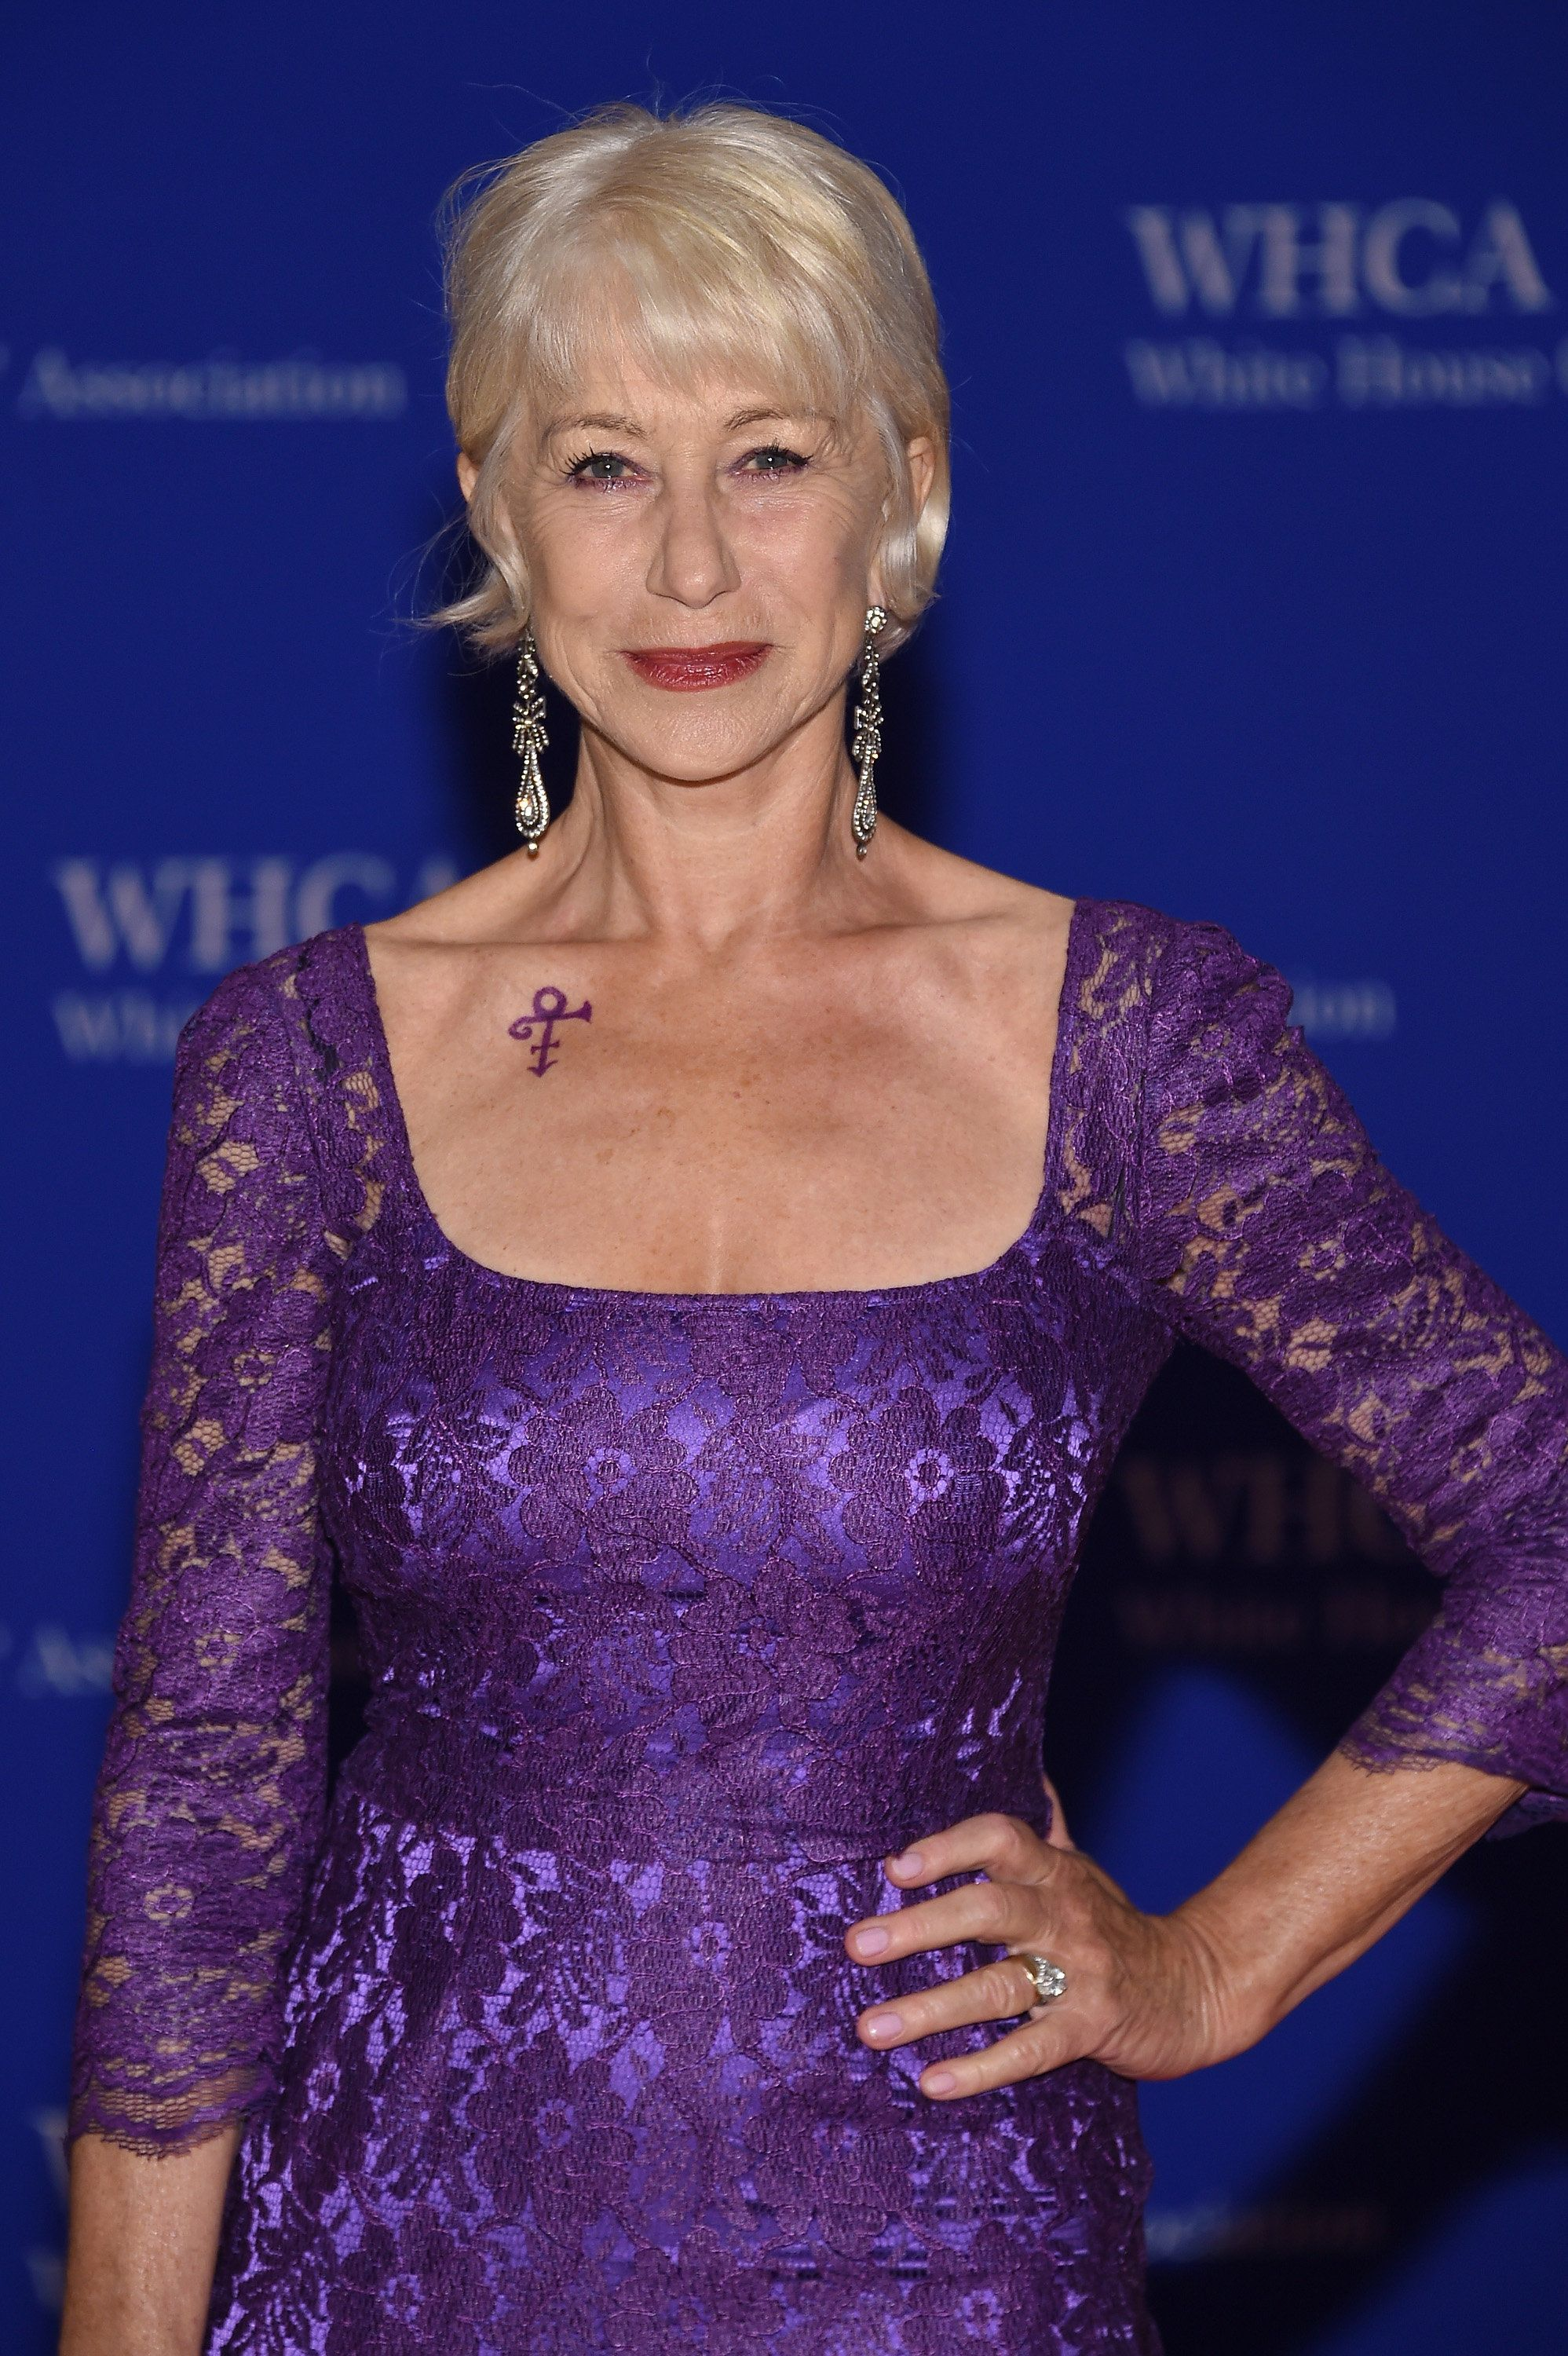 Search Helen Mirren Fakes